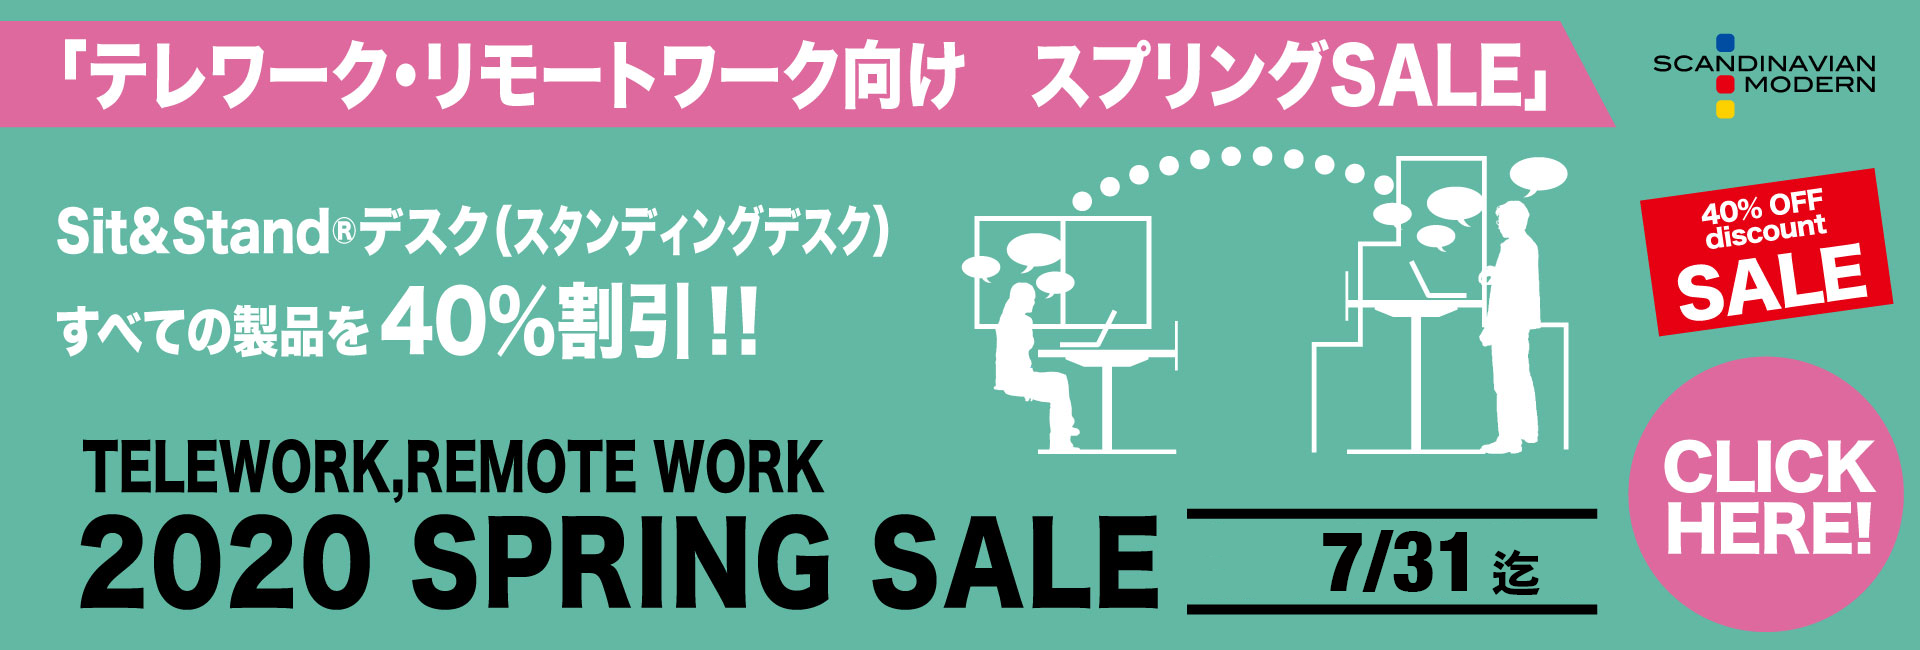 2020 Spring Sale until July, 31